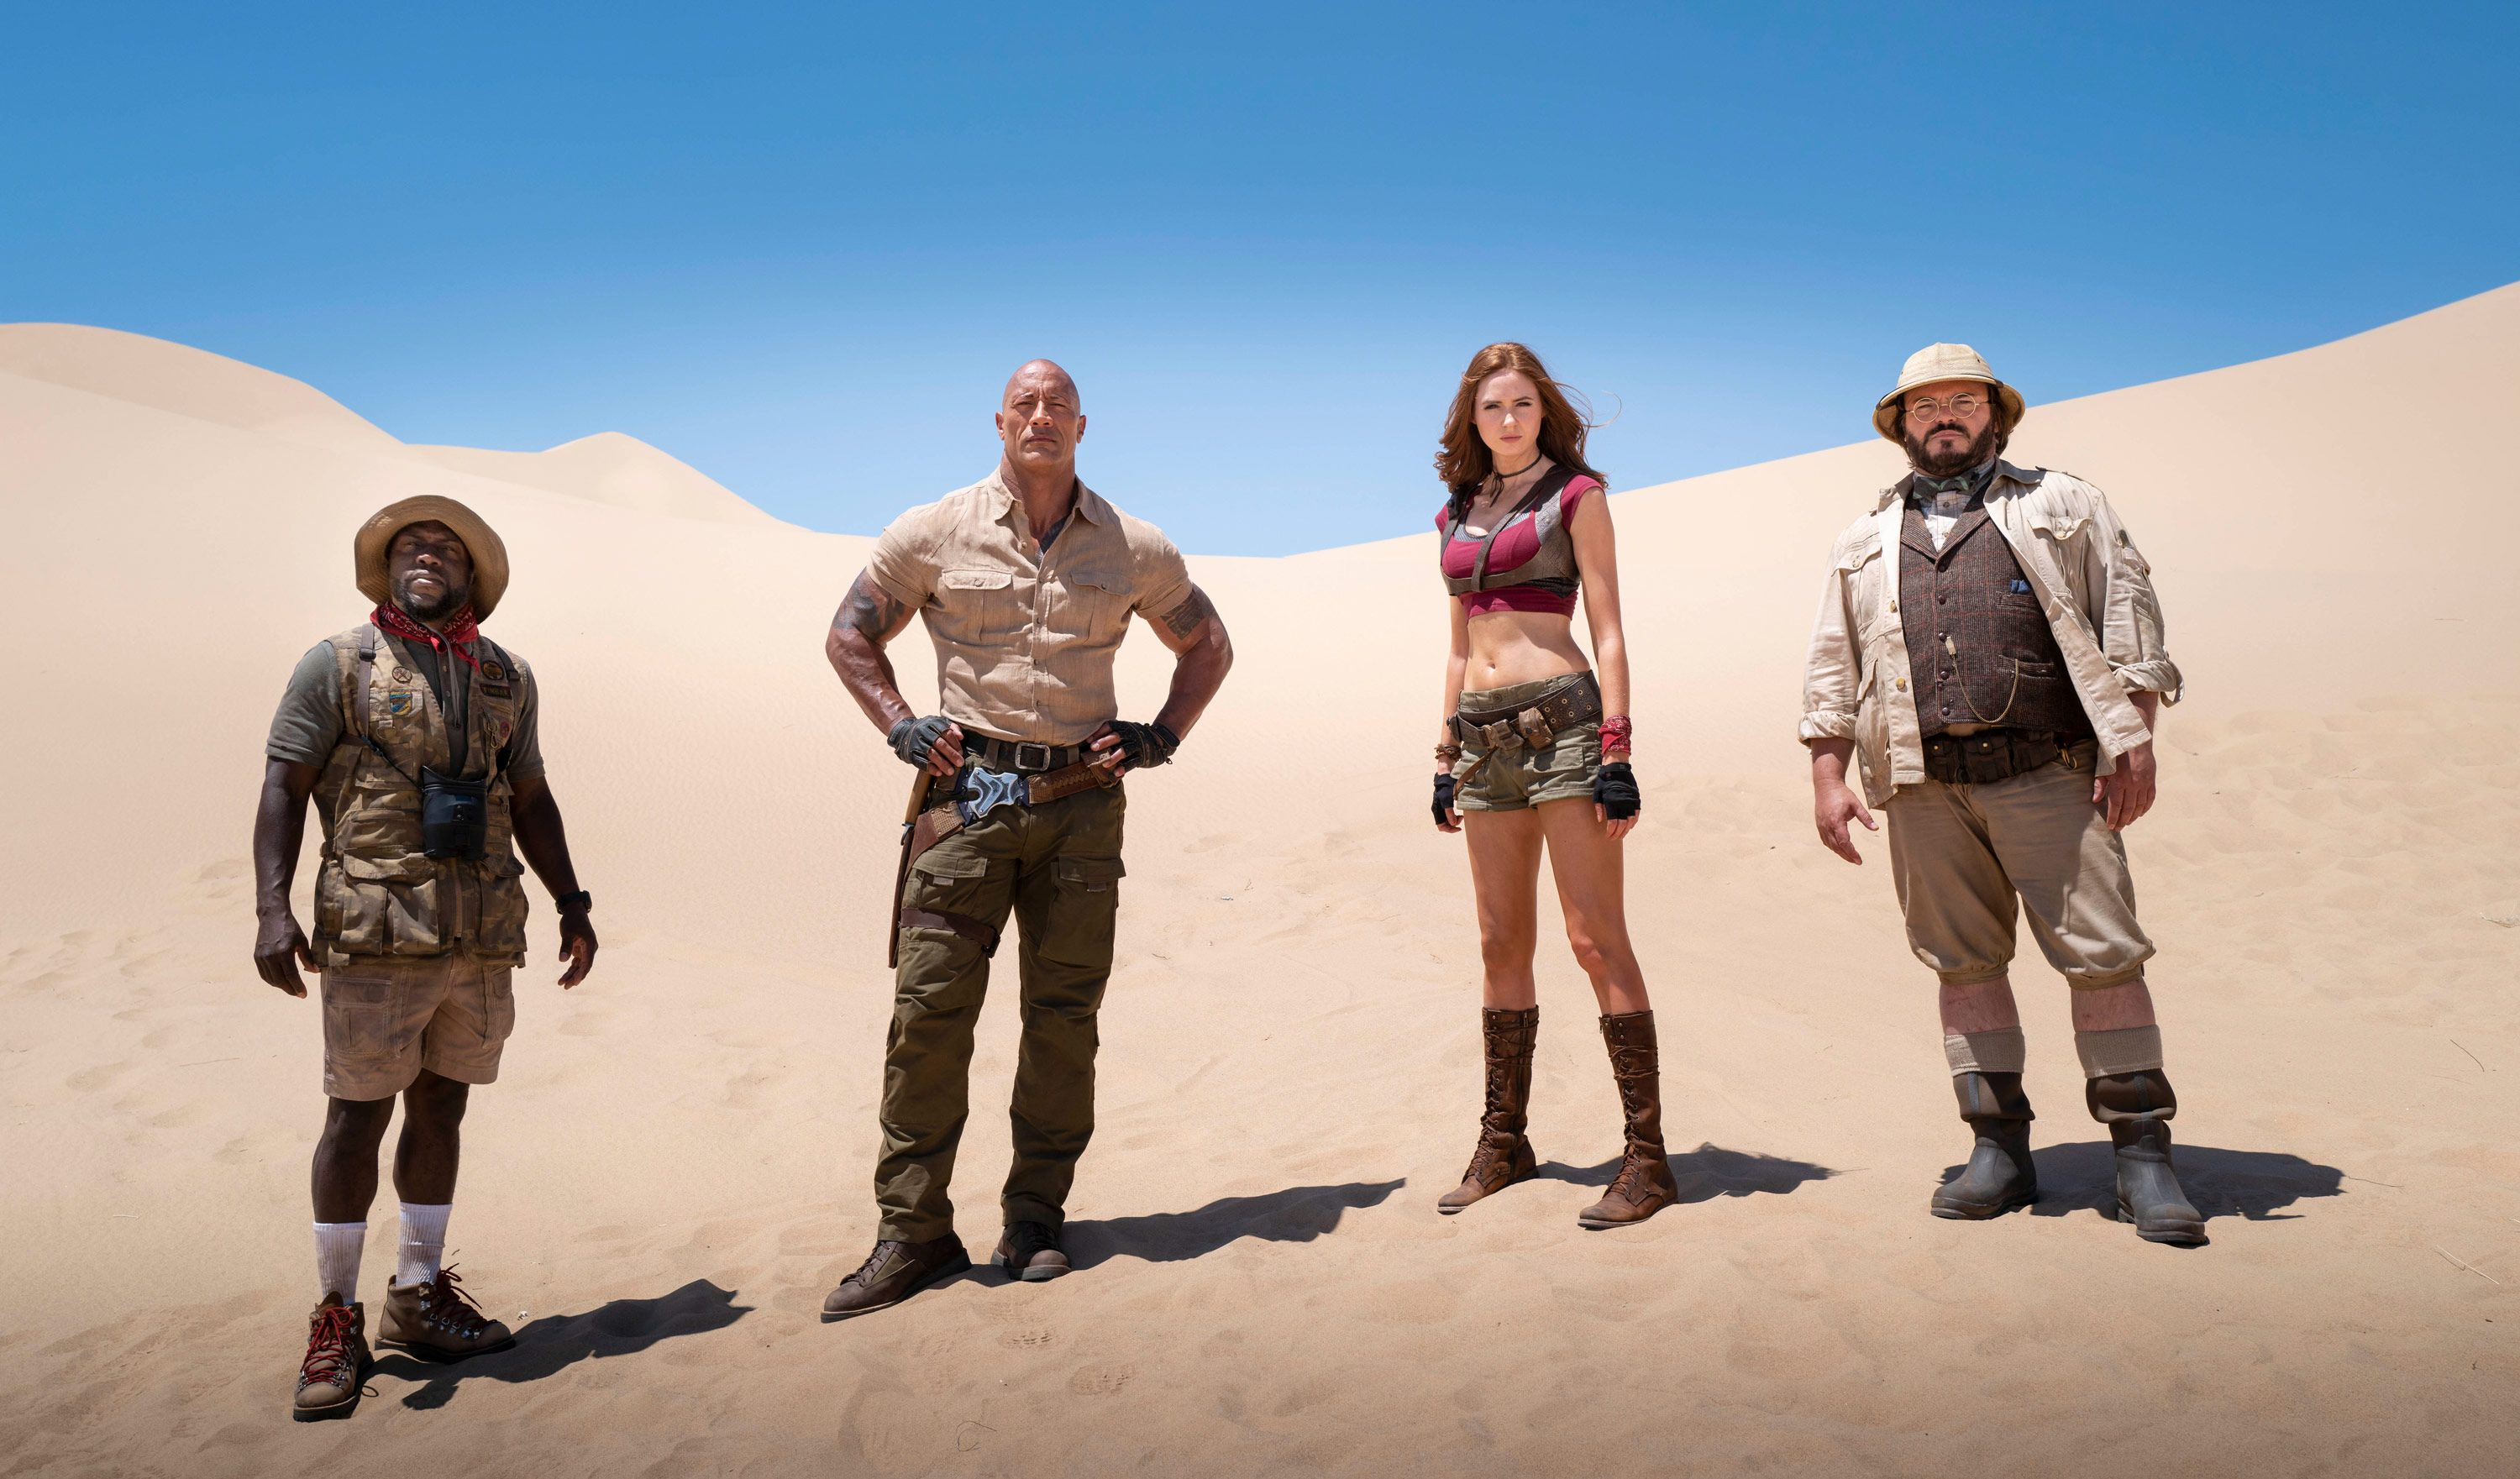 Jumanji: The Next Level first reactions say Dwayne Johnson's sequel is worthy of round 3